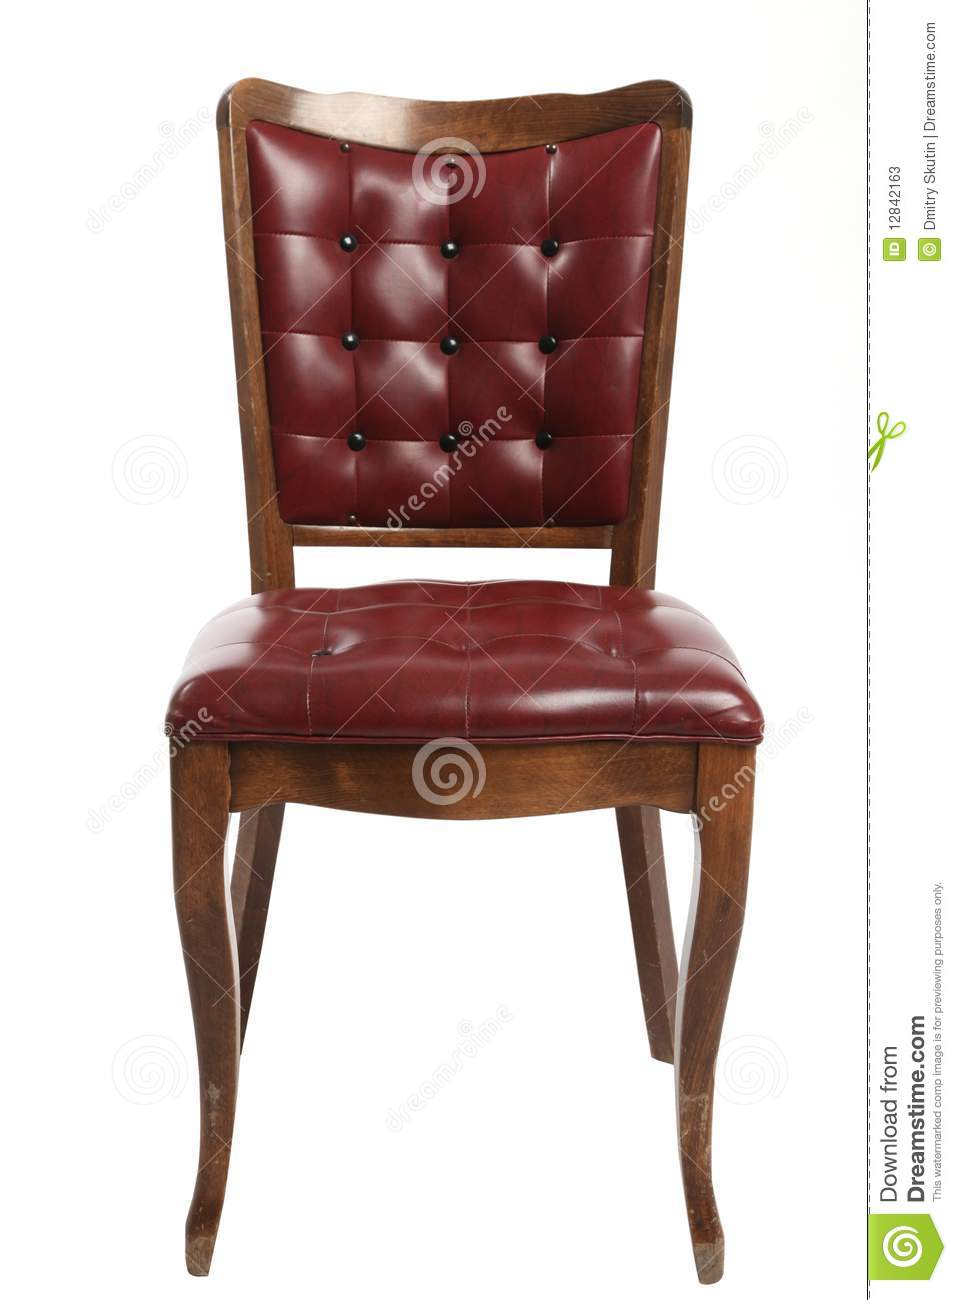 Old Chair Stock Photos Image 12842163